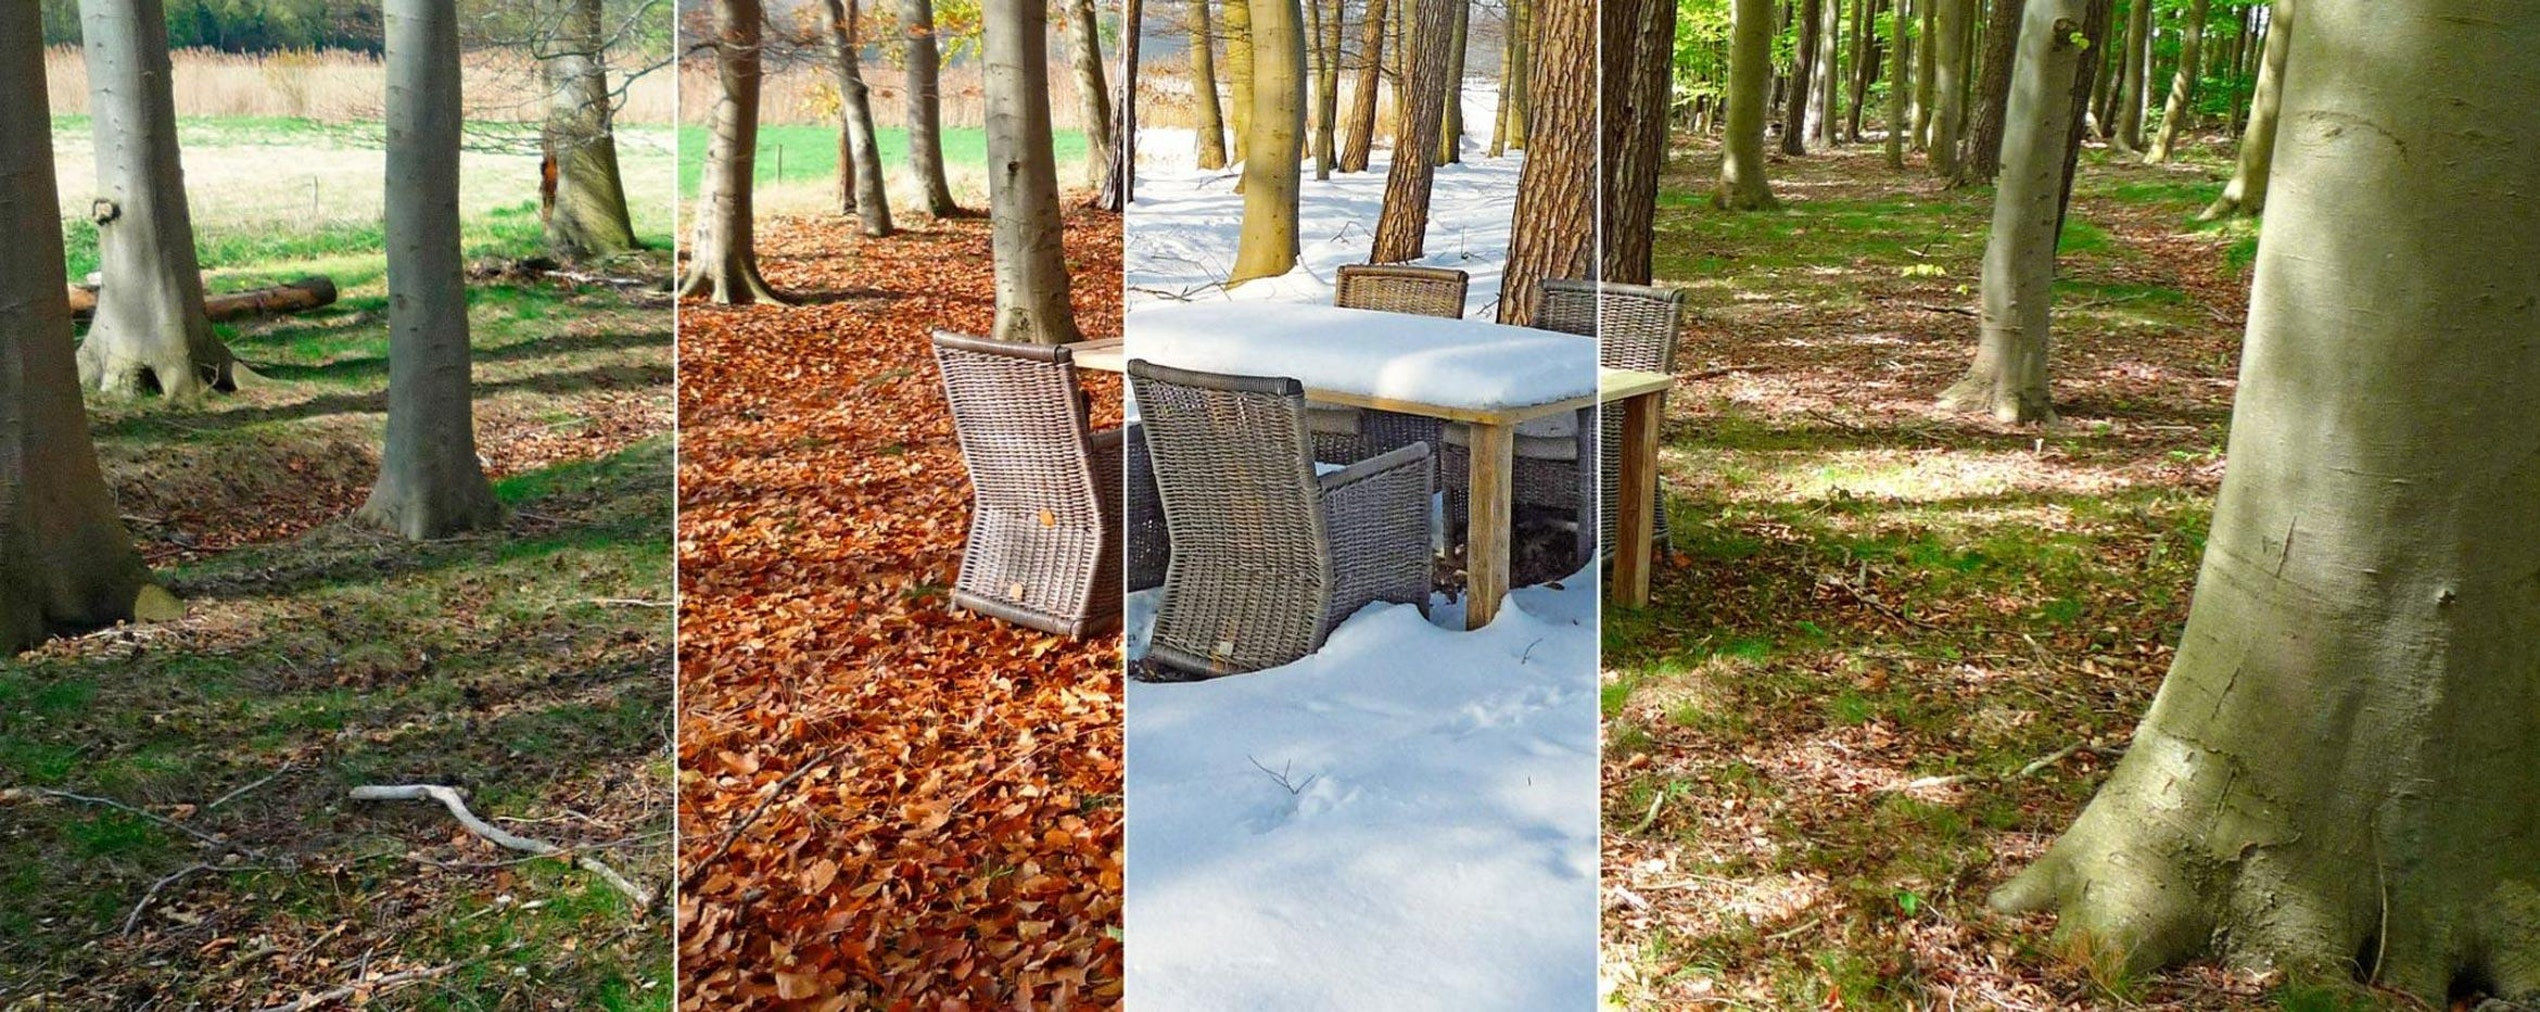 MAINTENANCE OF GARDEN FURNITURE IN AUTUMN